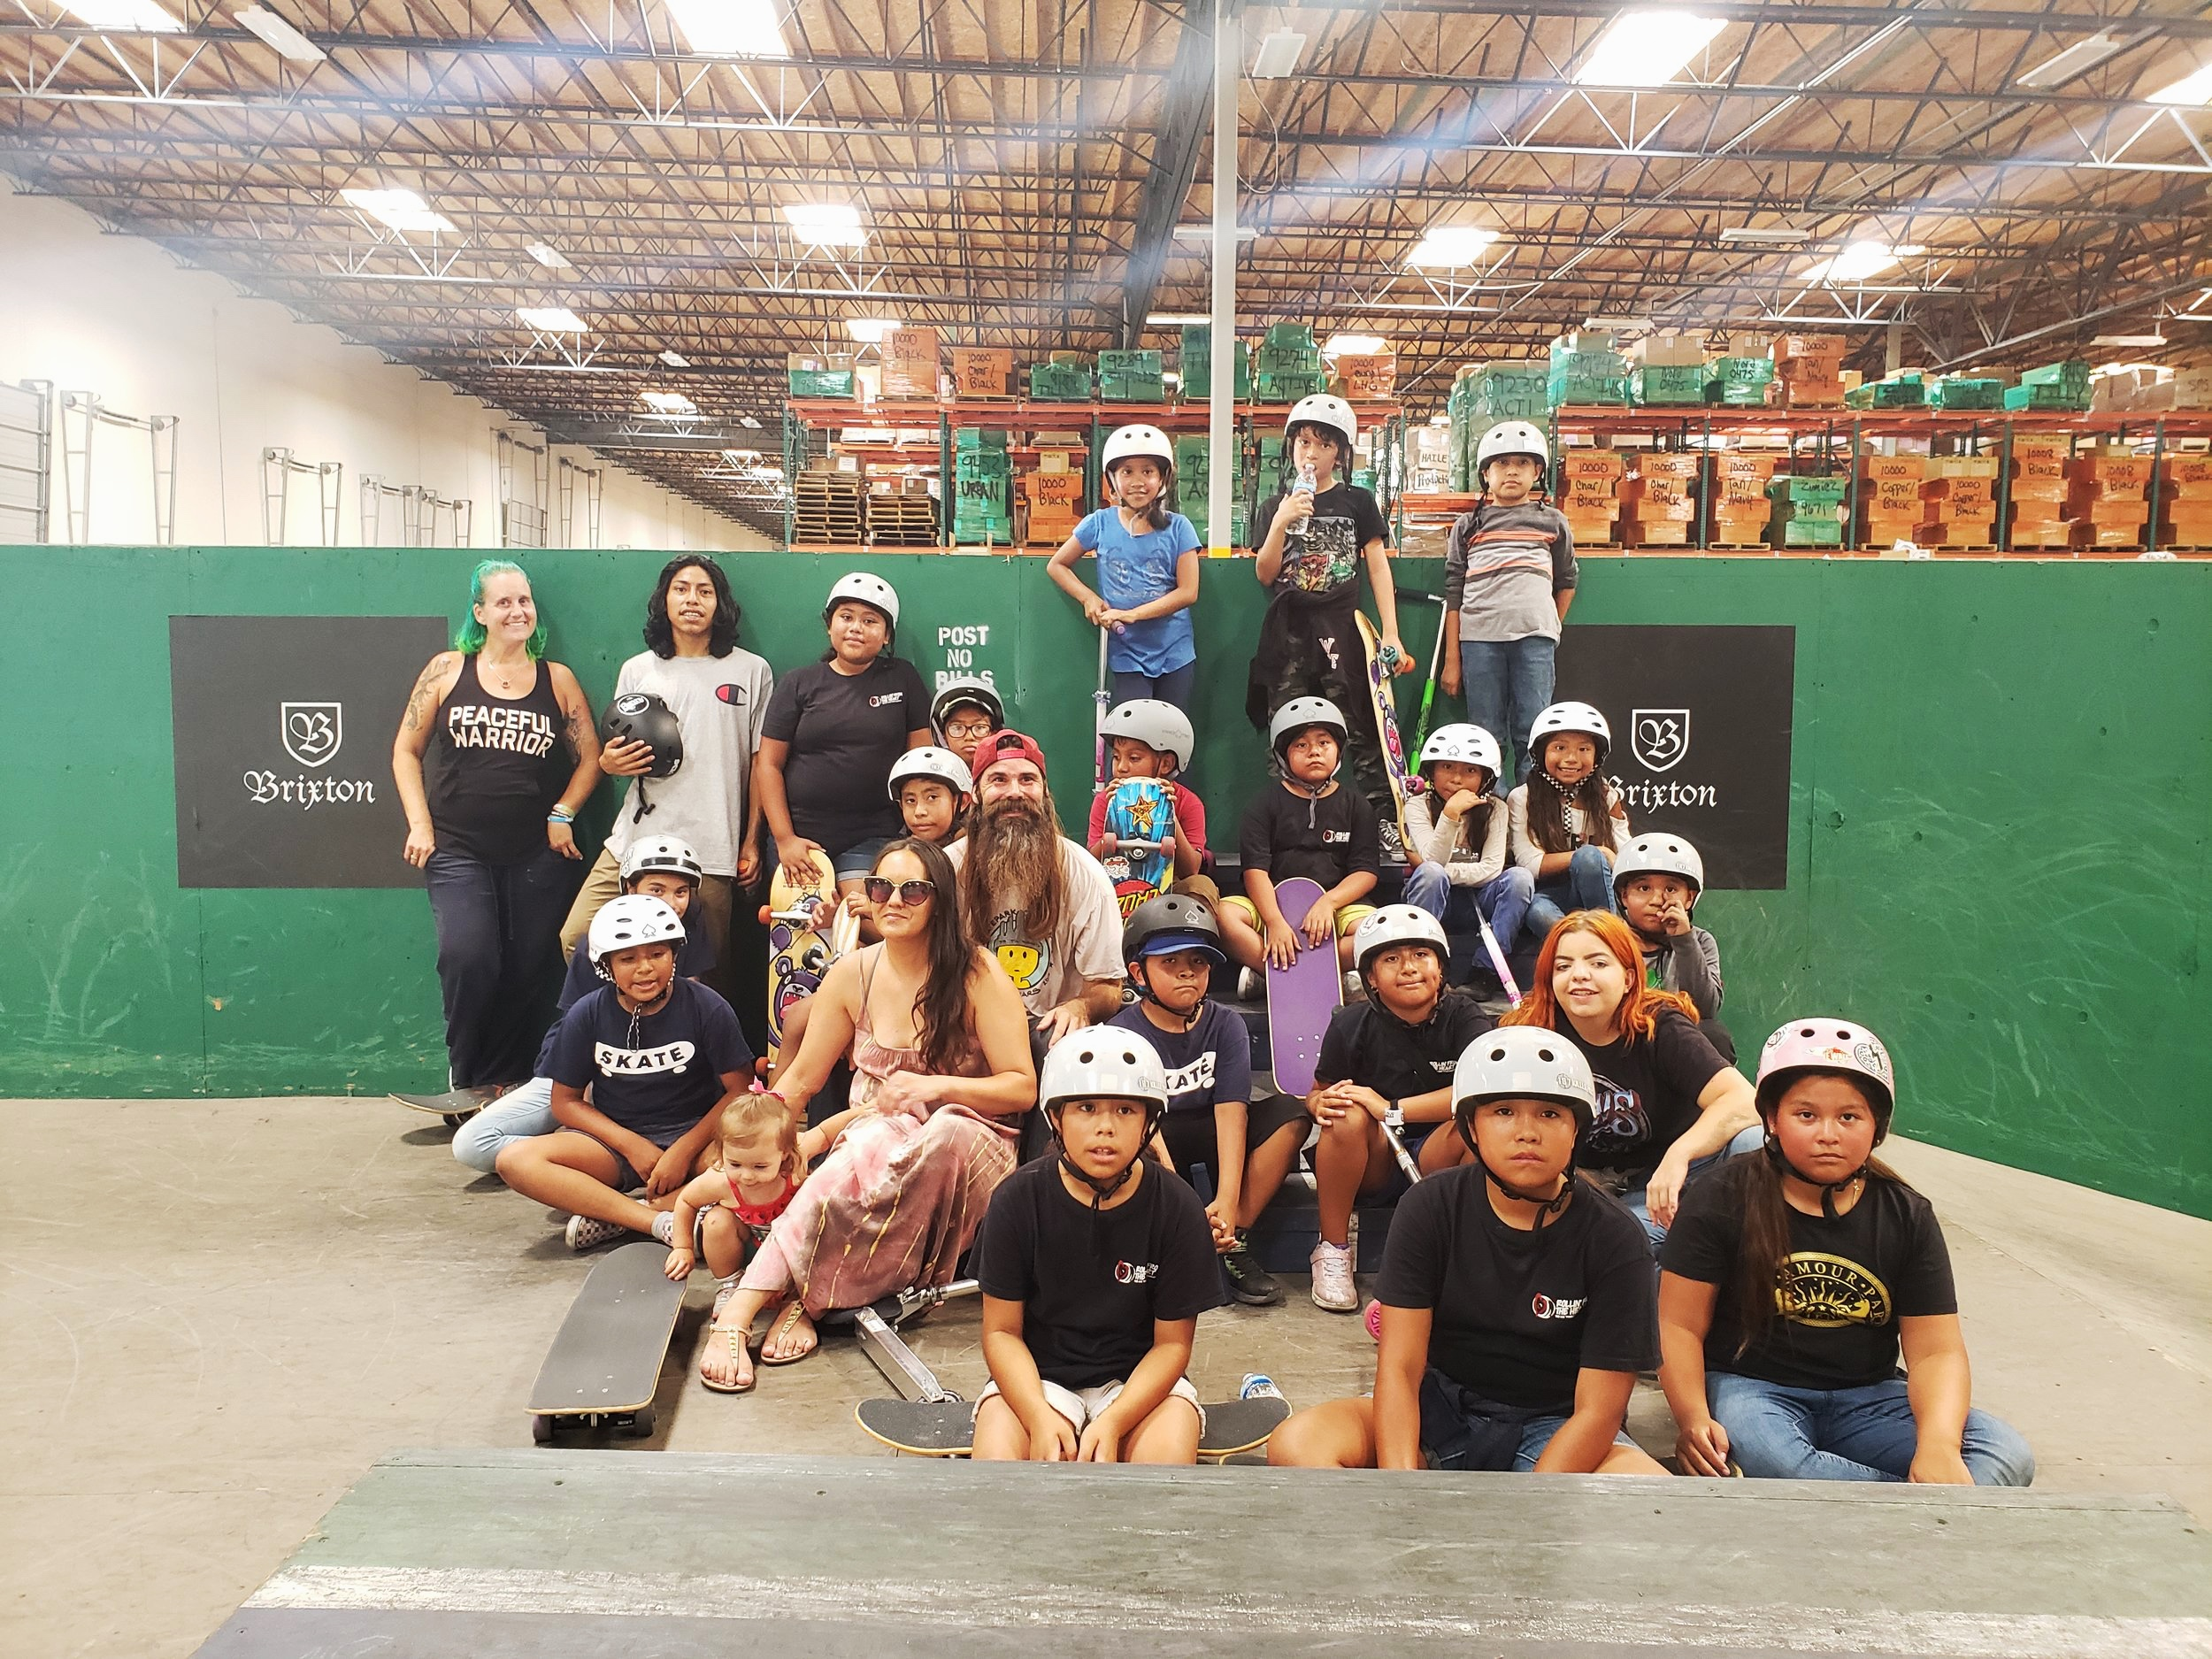 Brixton Career Day - August 2019We took kids from Oceanside Lifeline to Brixton for a talk and tour of their facilities. They also got to skate their private park and have a pizza party. We are so thankful to Brixton for all they do for our kids.